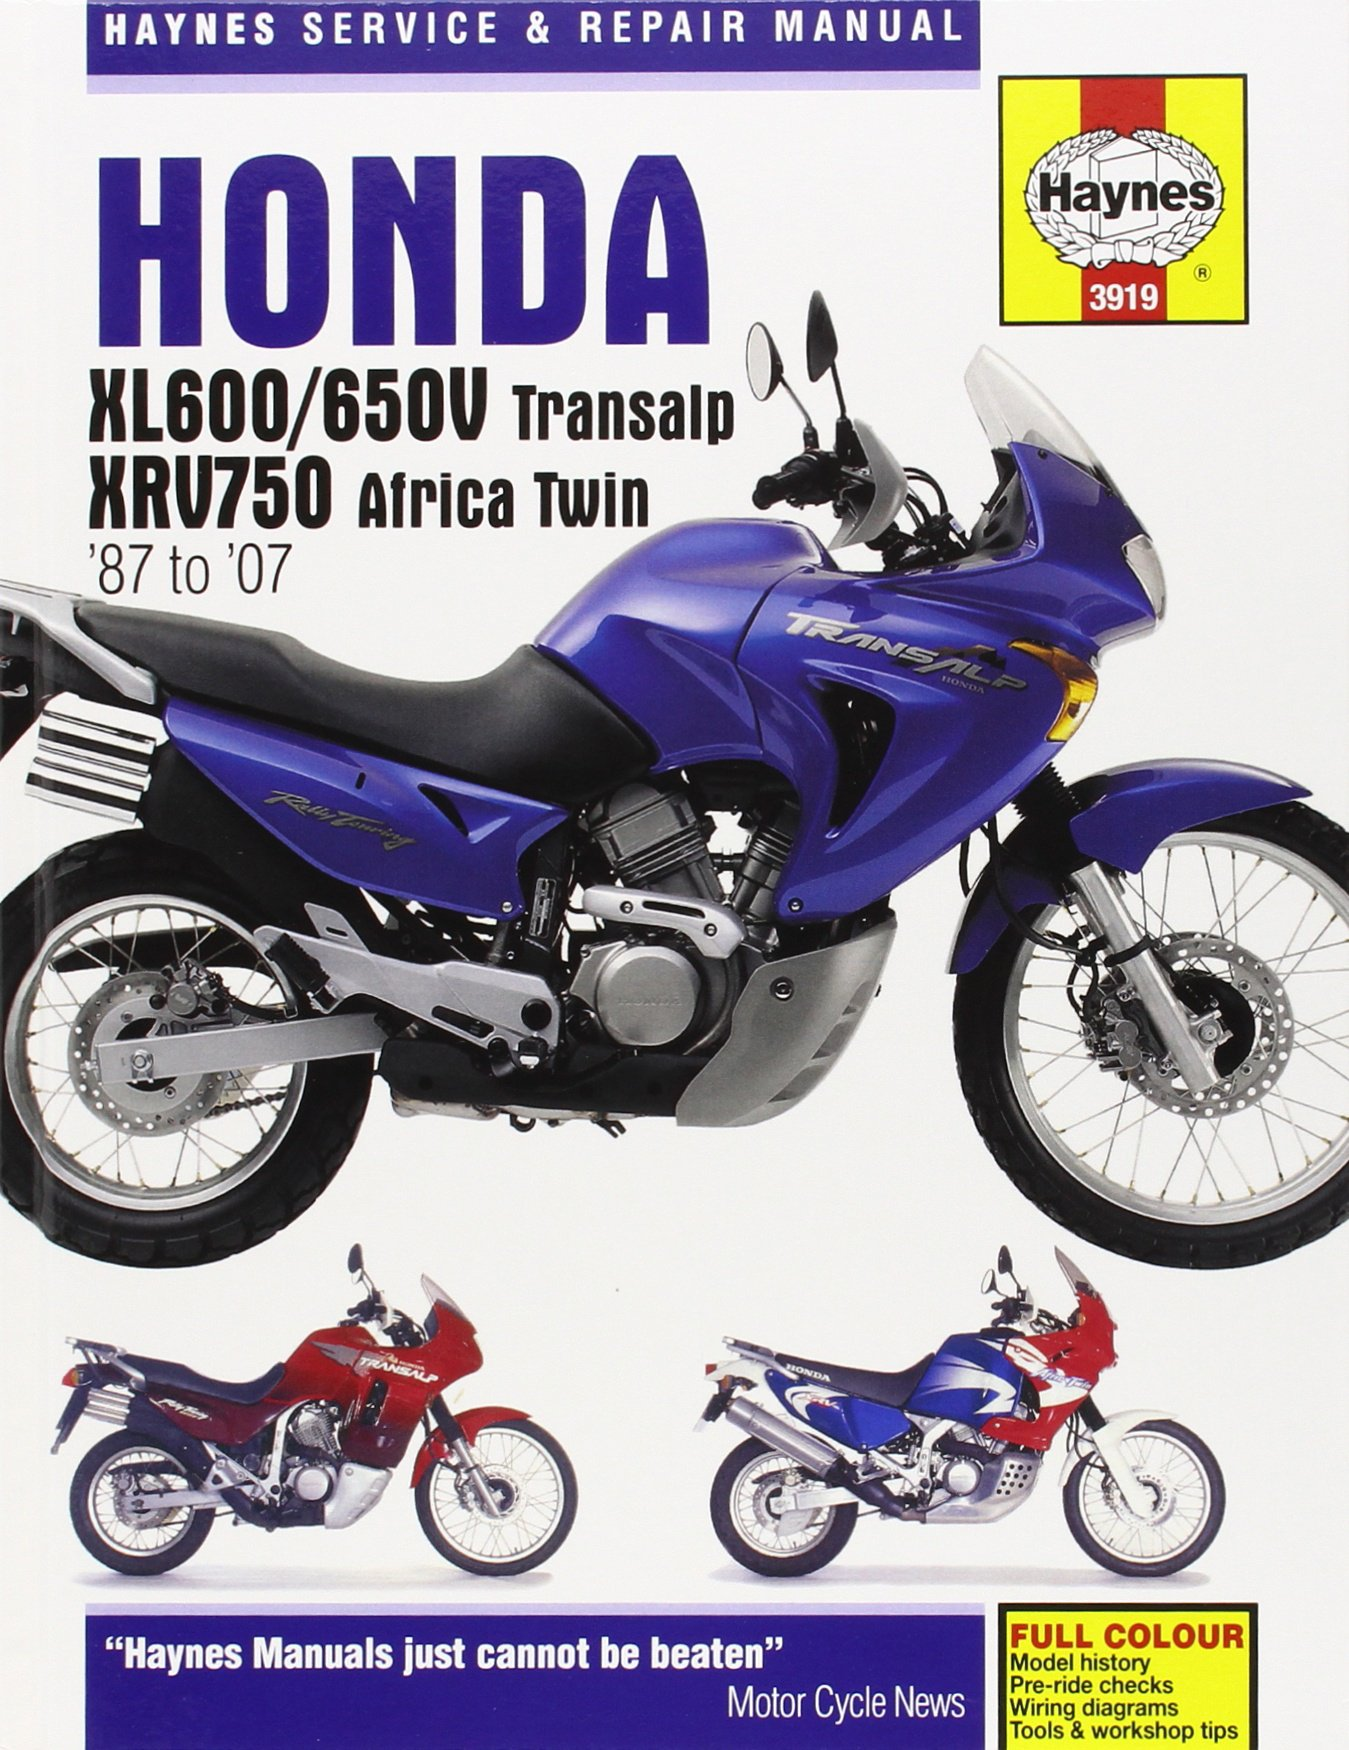 Honda XL600/650V Transalp & XRV750 Africa Twin '87 to '07 (Haynes Service & Repair  Manual): John H Haynes: 9781844257546: Amazon.com: Books